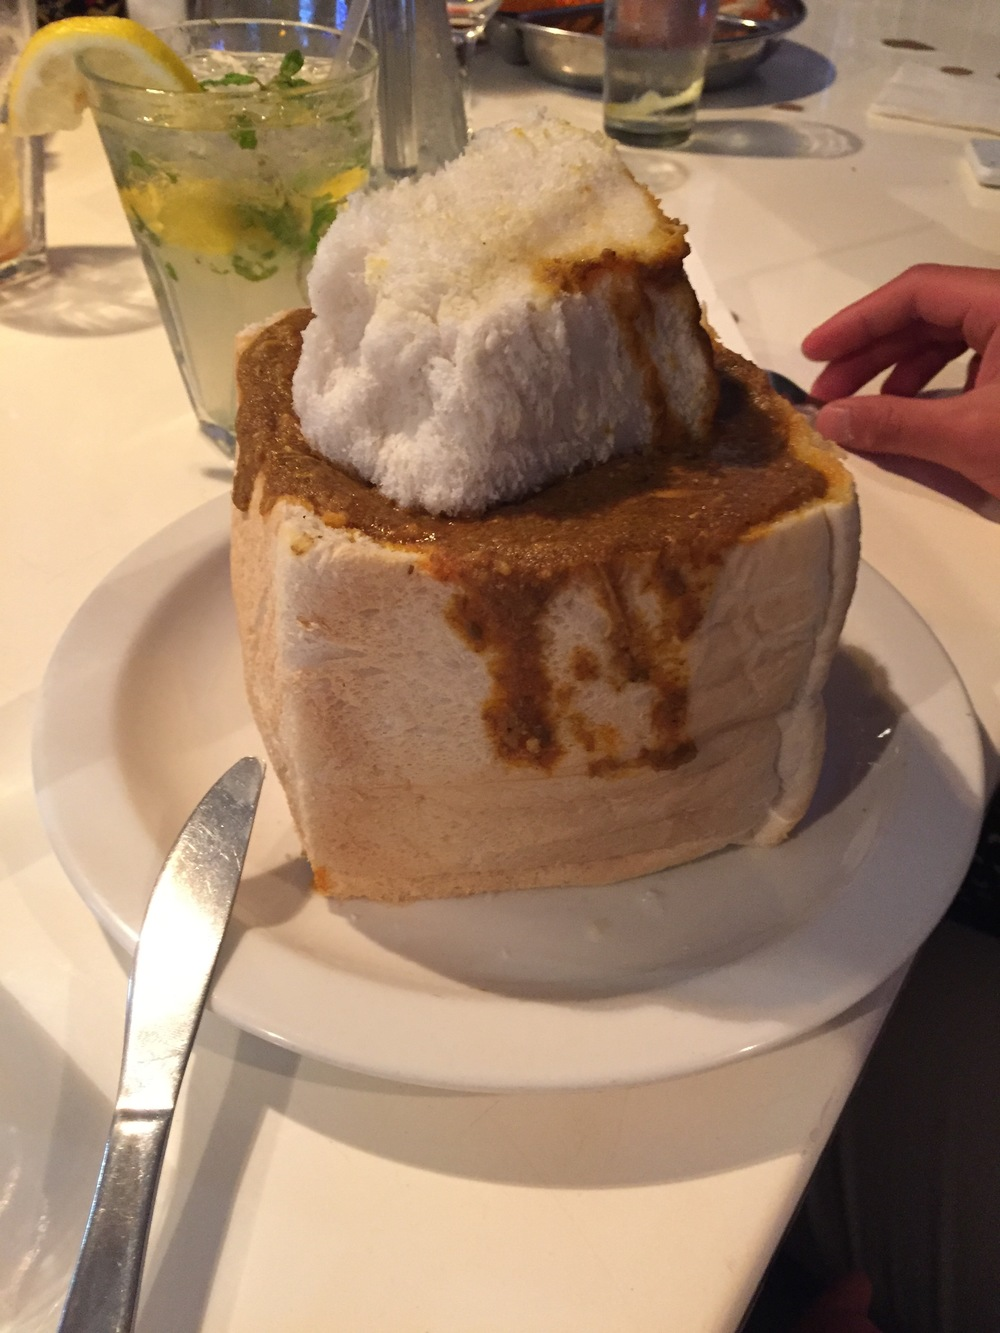 The infamous bunny chow